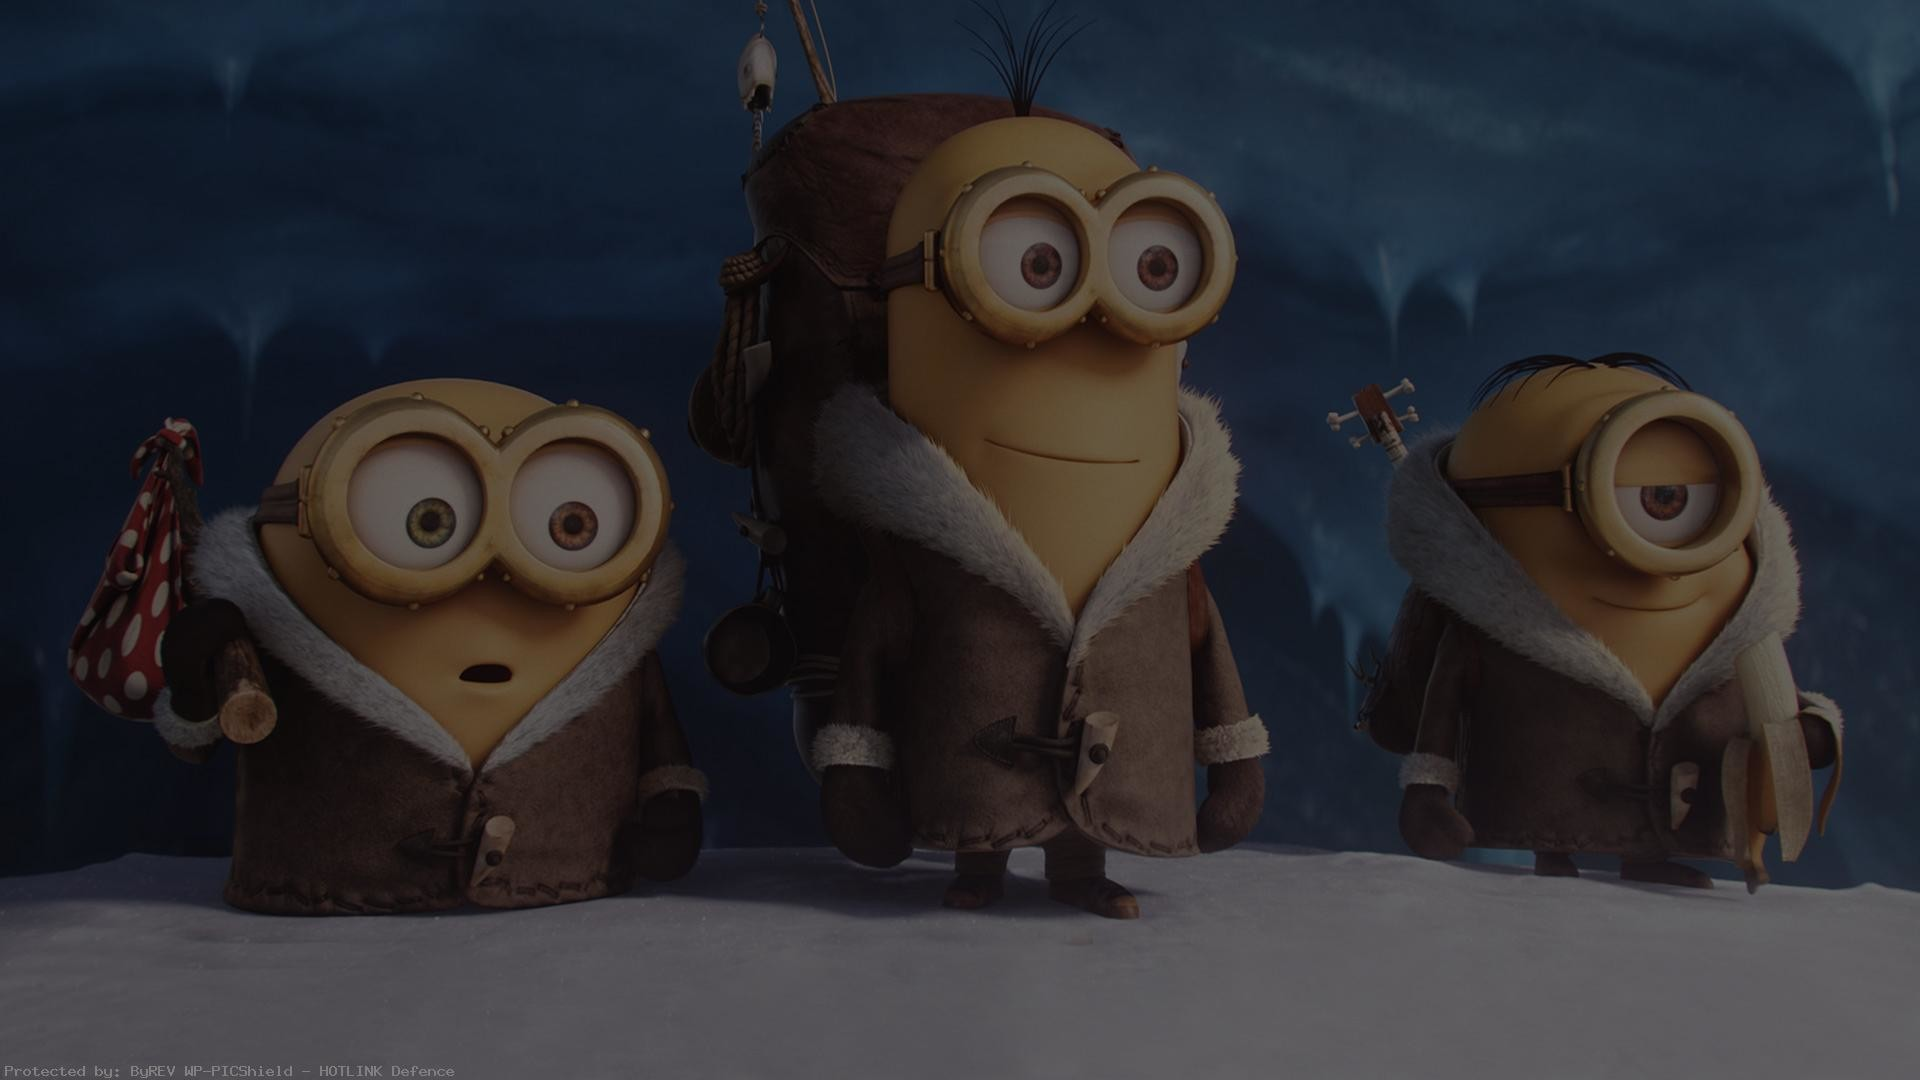 Res: 1920x1080, Minions Wallpapers (7)